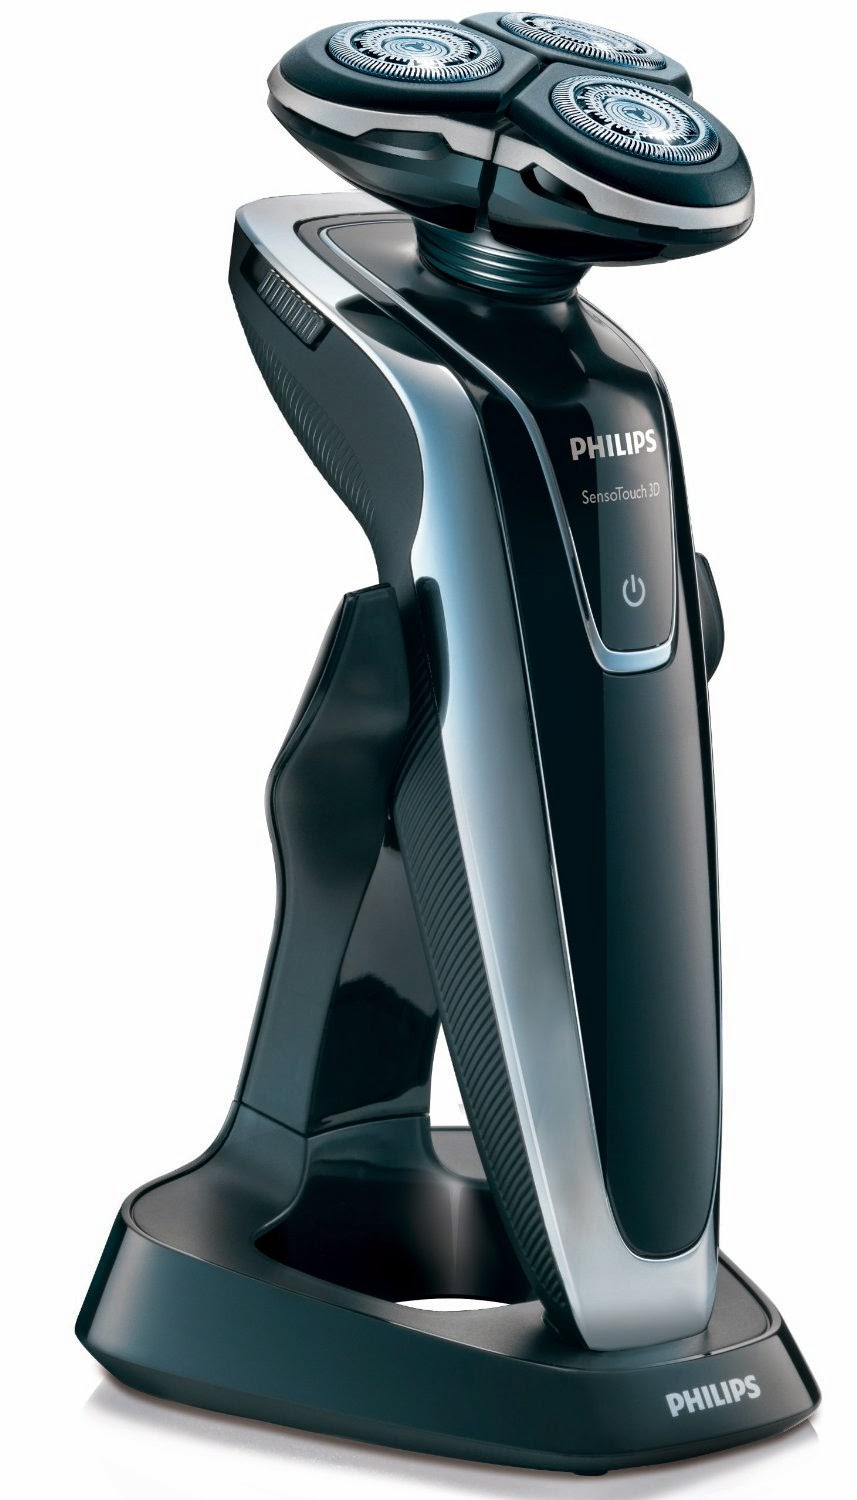 Philips Senso Touch 3D RQ1250 Shaver Review